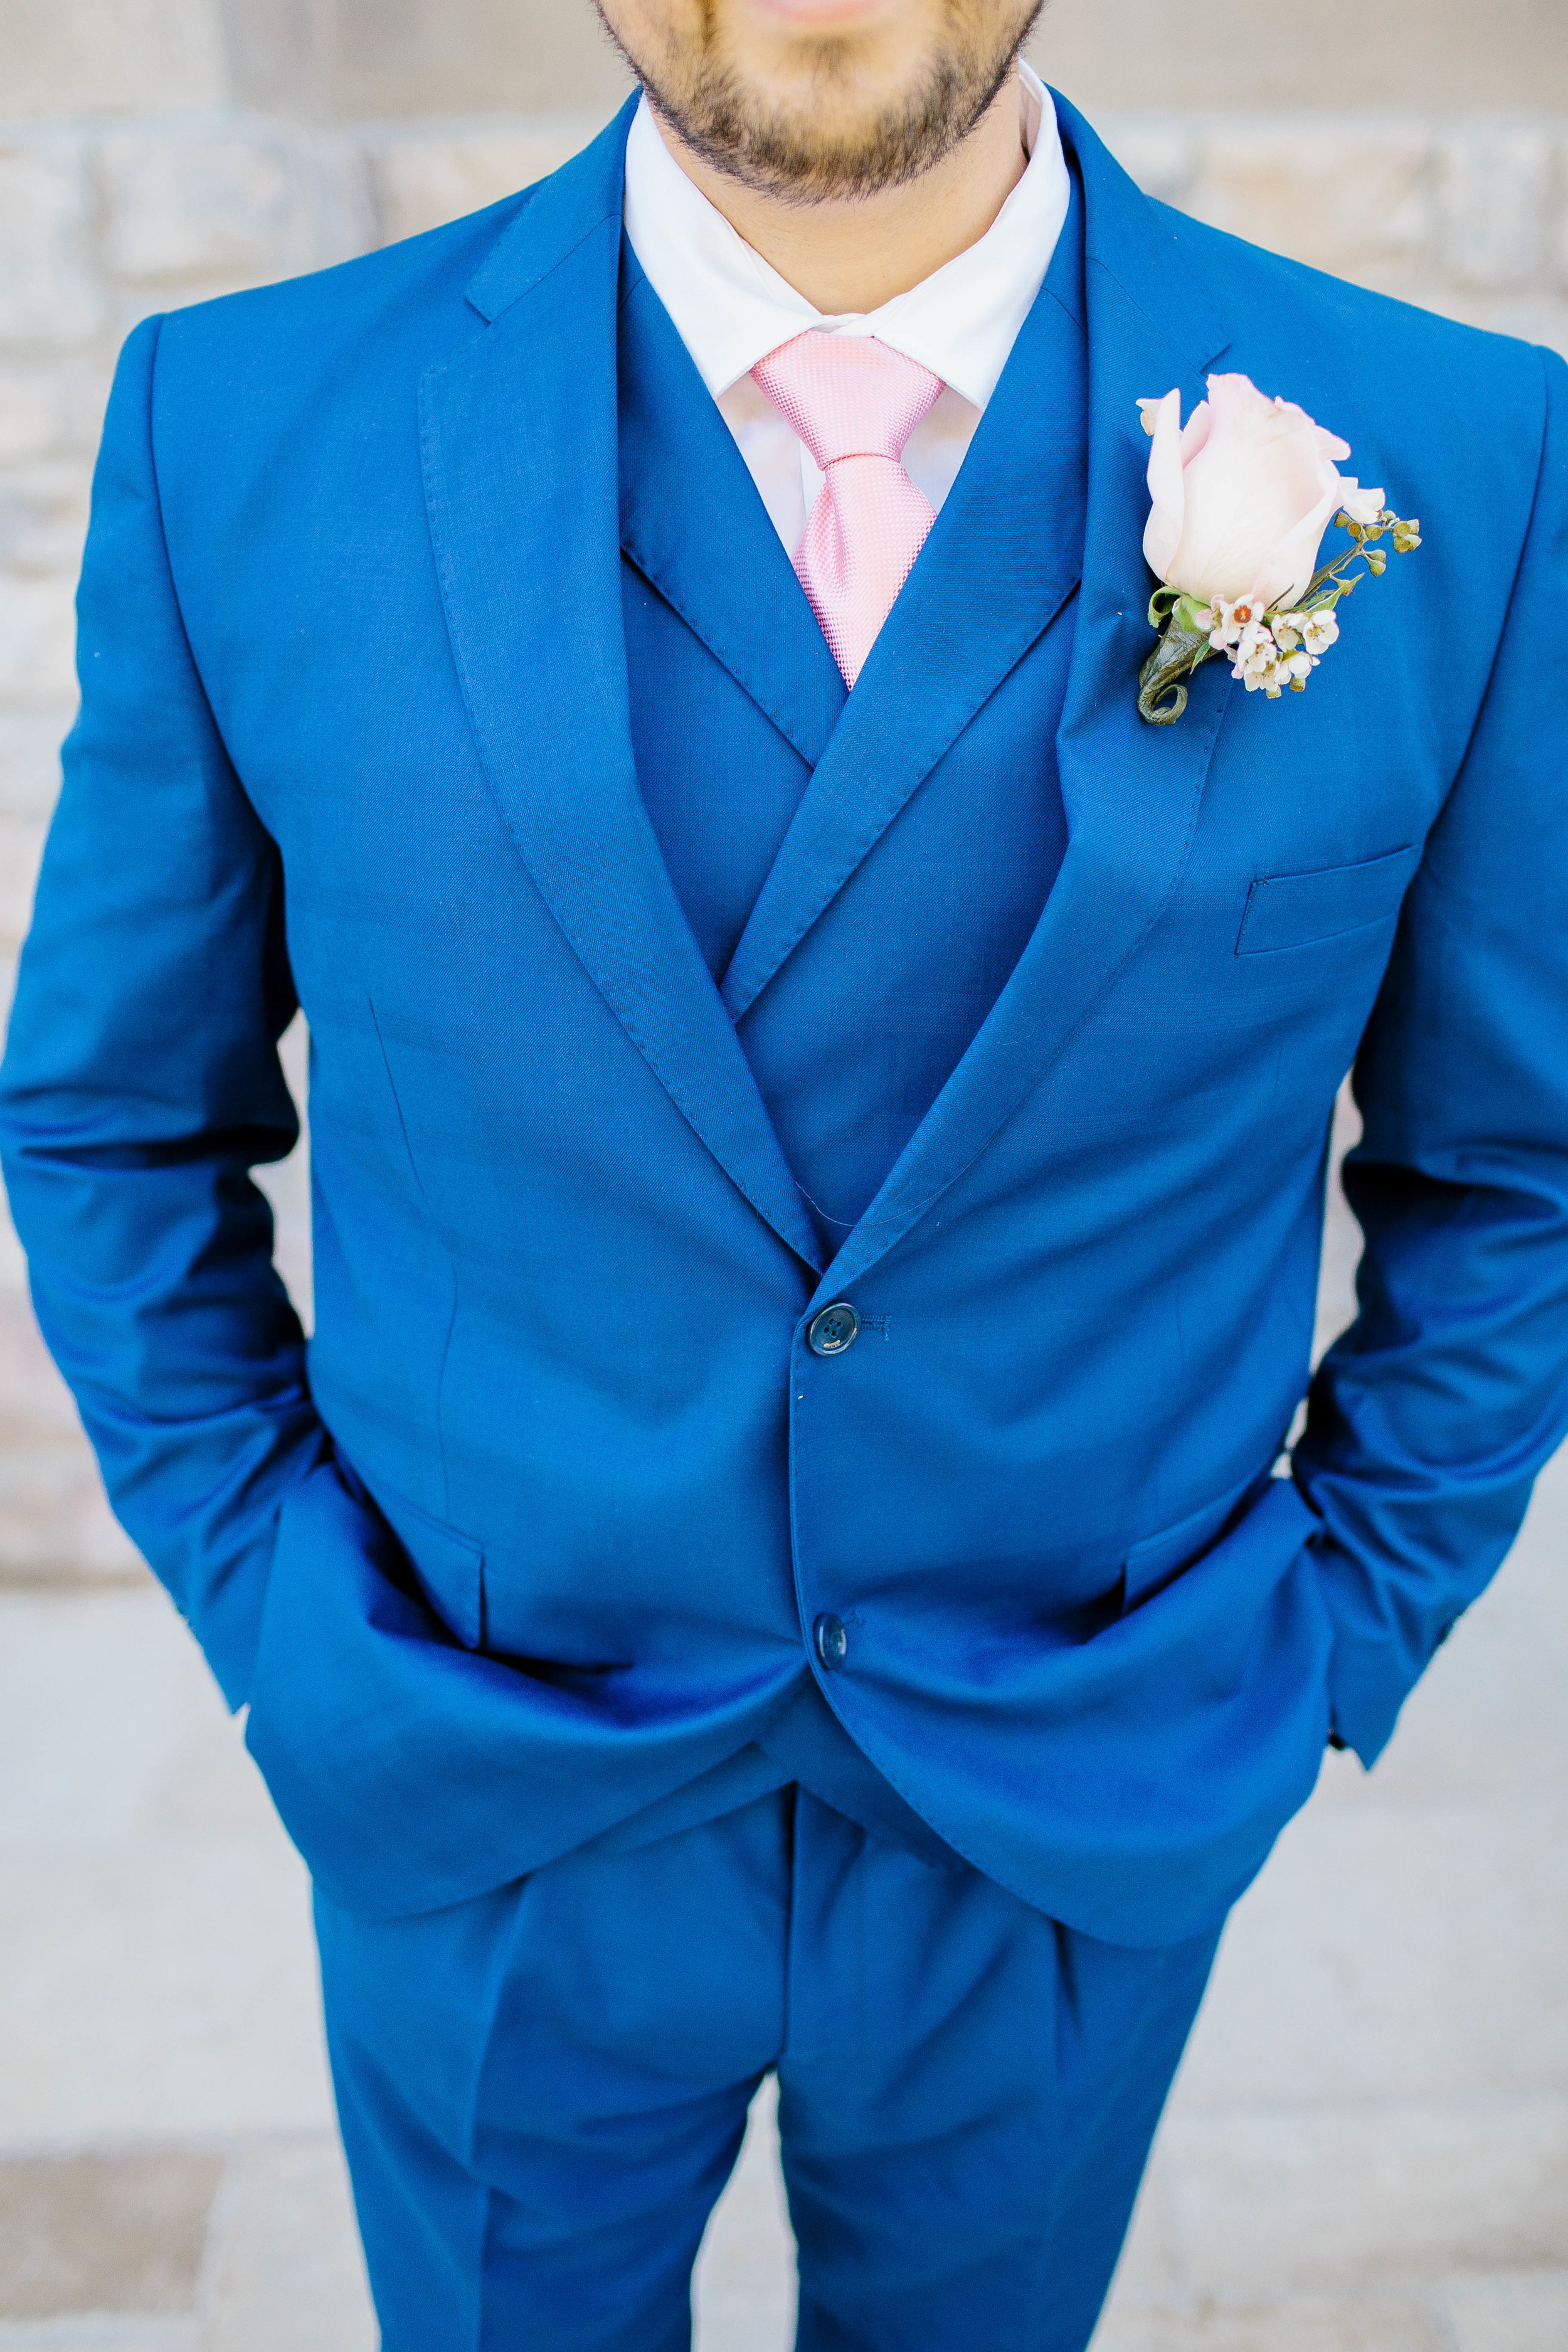 Navy Blue Suit for the Groom- Arizona Wedding Photographer